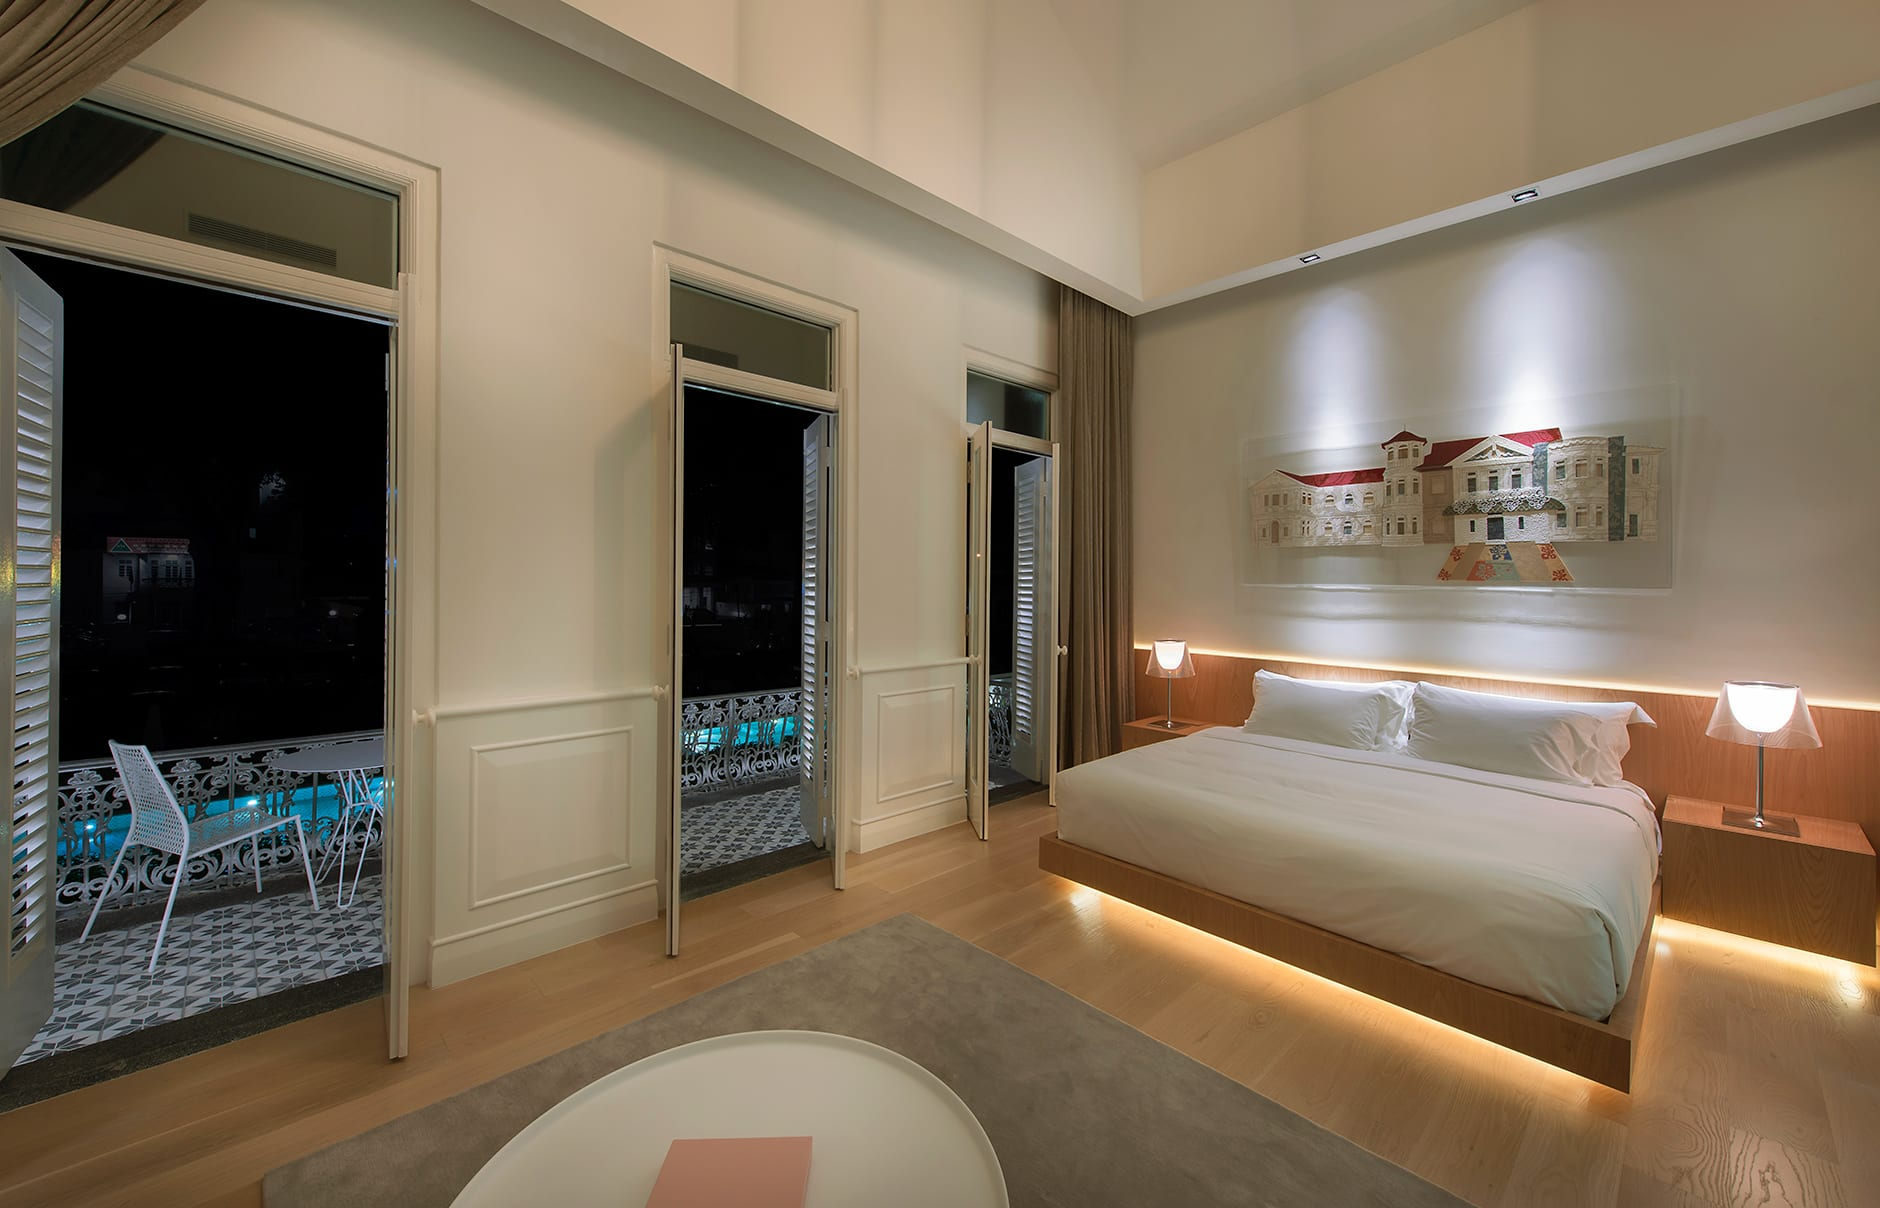 Room 3. Macalister Mansion, Georgetown, Penang, Malaysia. © Macalister Mansion